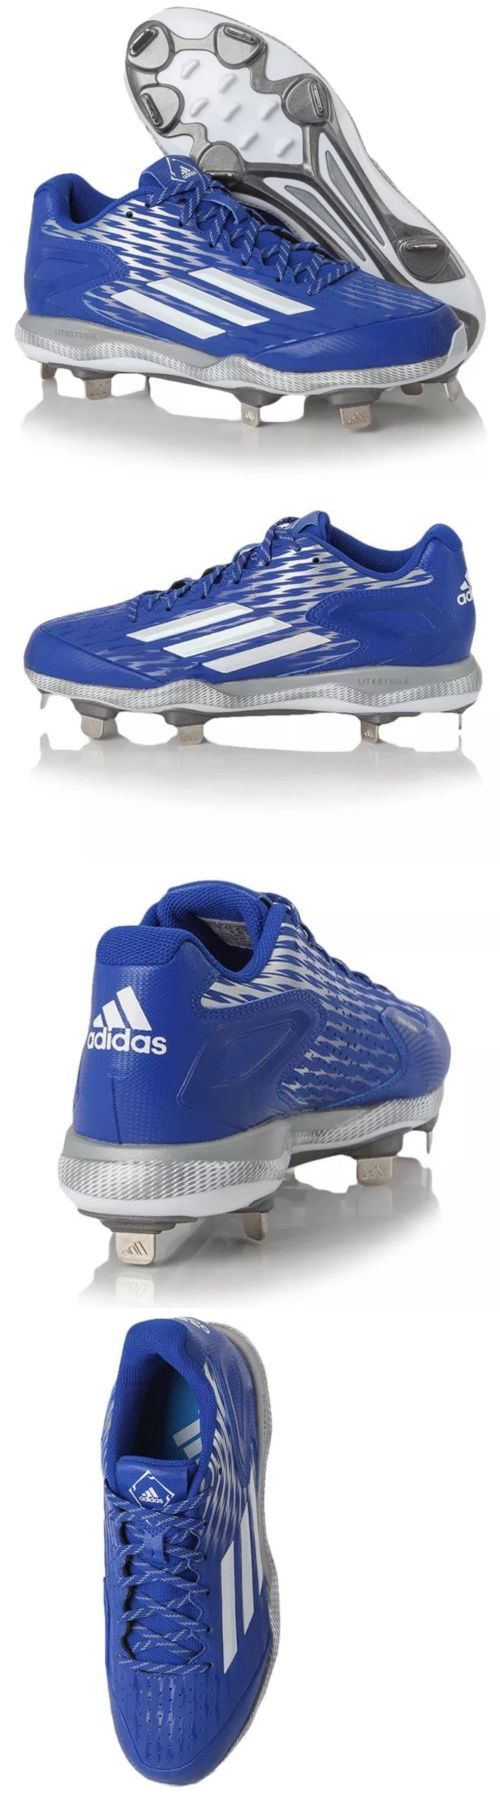 Mens 159059: Adidas Power Alley 3 S84763 Metal Baseball Cleats Sz 10. New -> BUY IT NOW ONLY: $30.0 on eBay!